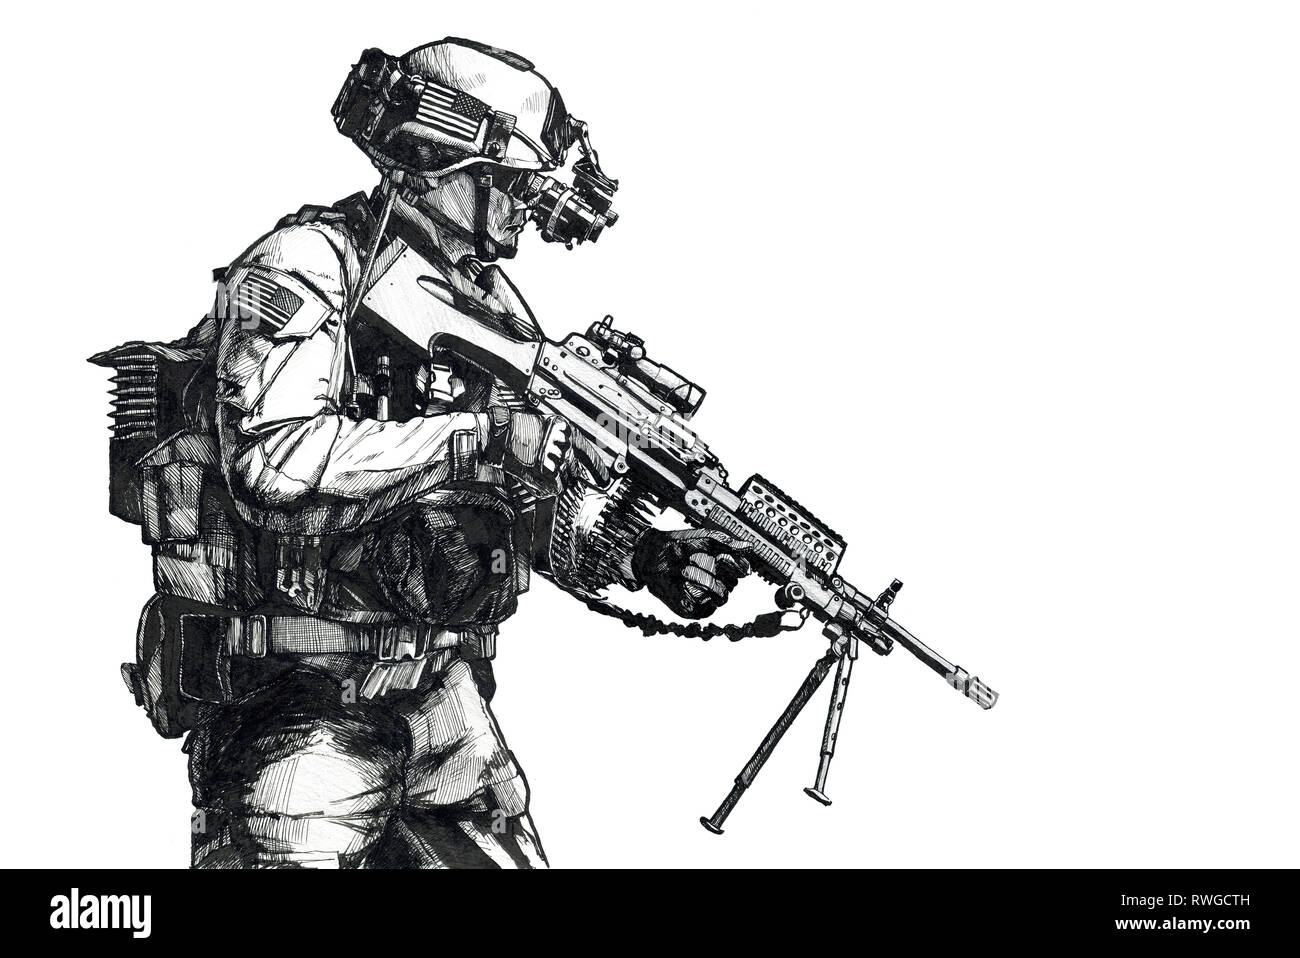 Hand drawn image of a U.S. Army Ranger with machine gun and night vision goggles. - Stock Image